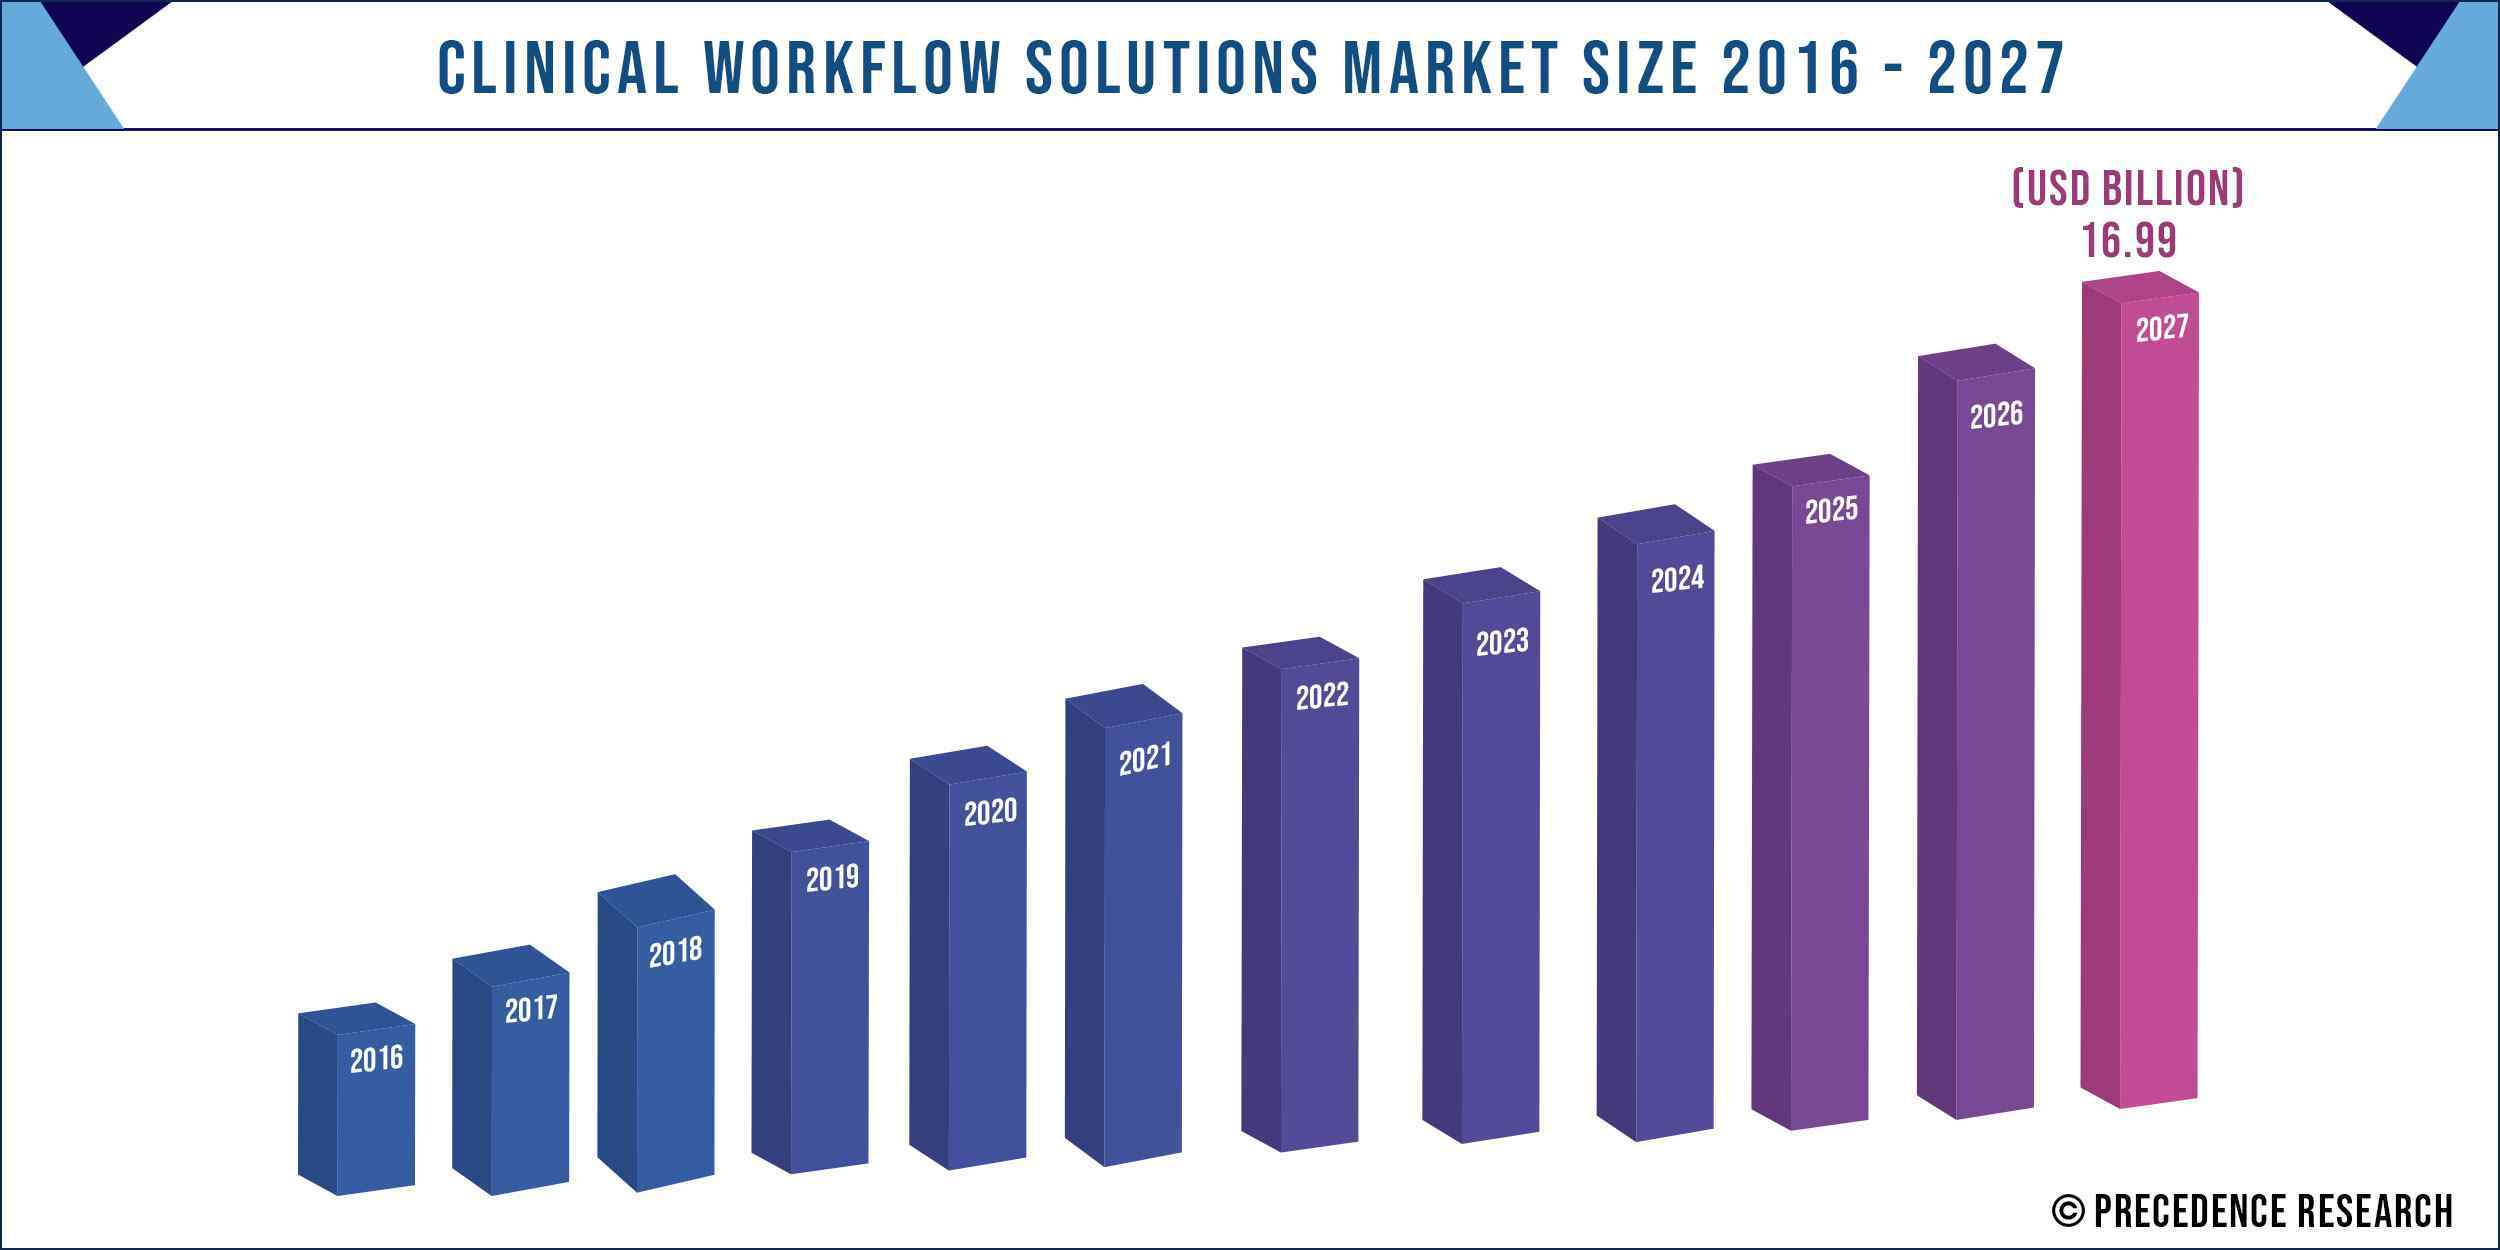 Clinical Workflow Solutions Market Size 2016 to 2027